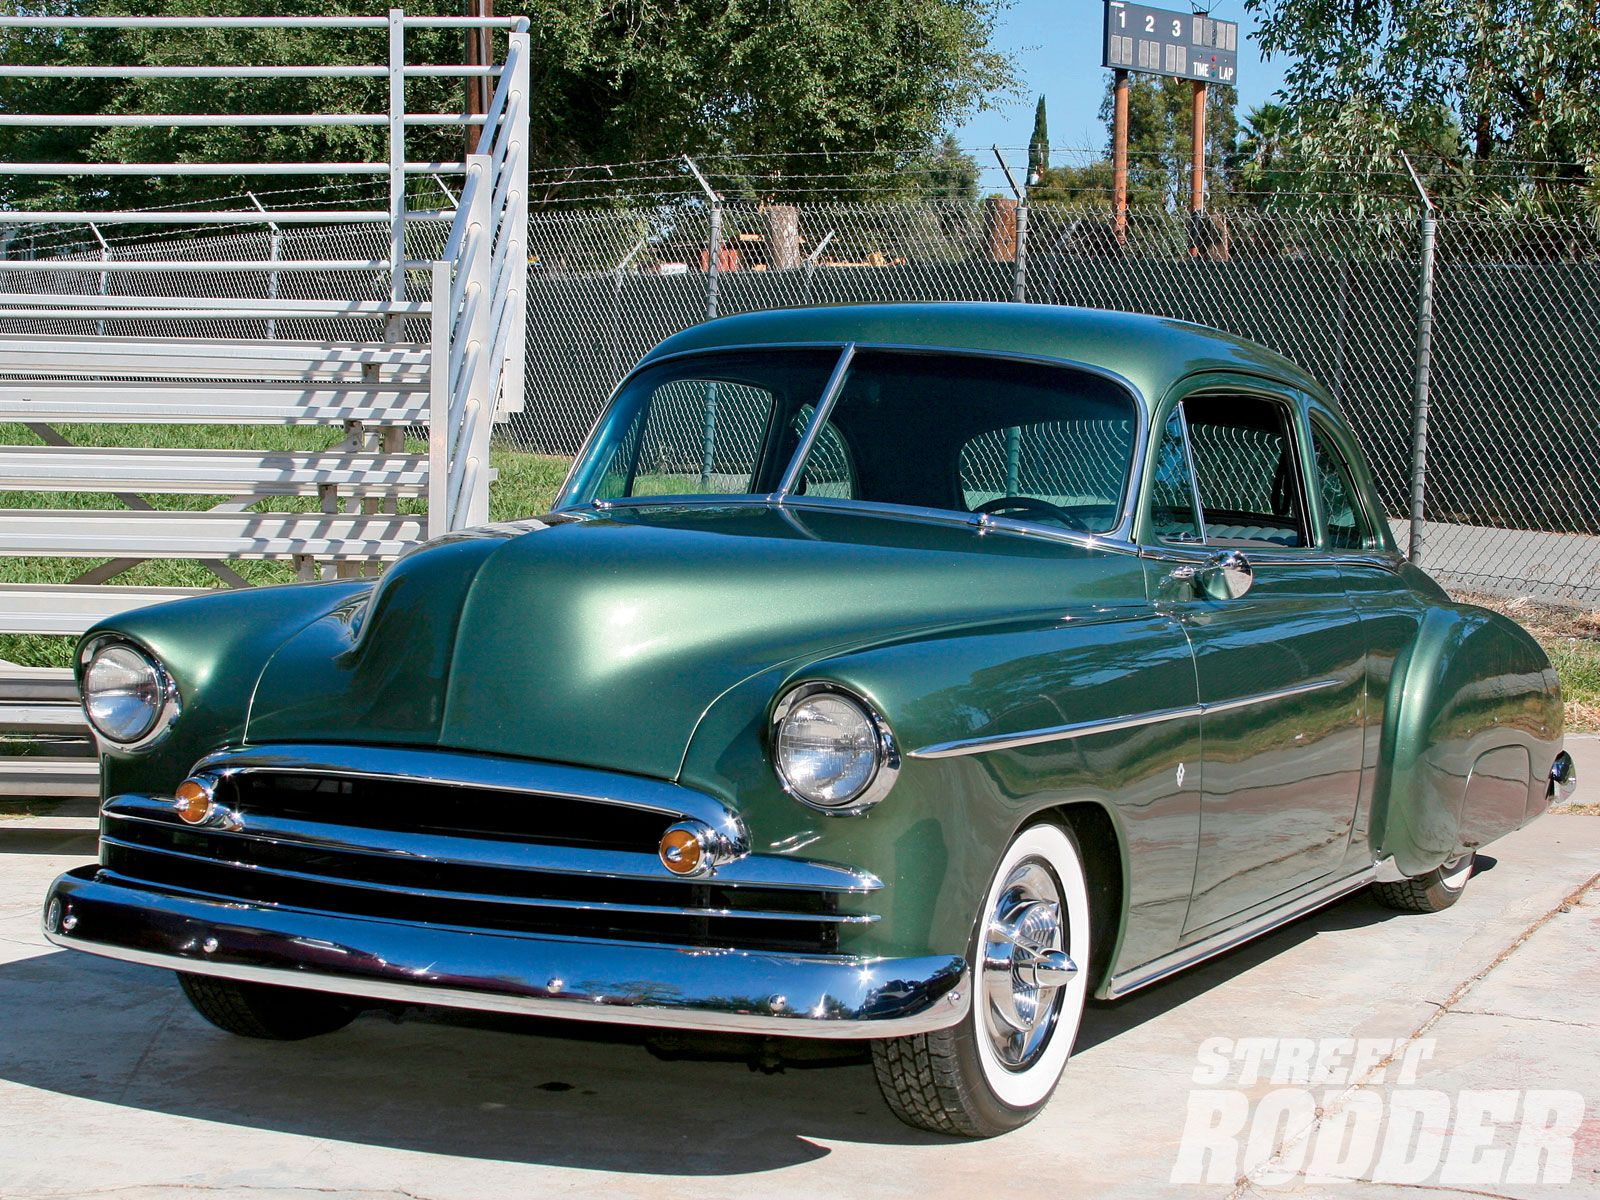 1950 Chevy Styleline Coupe Custom Grandpas Car 51 Chebies Cars 1951 Chevrolet Deluxe Convertible